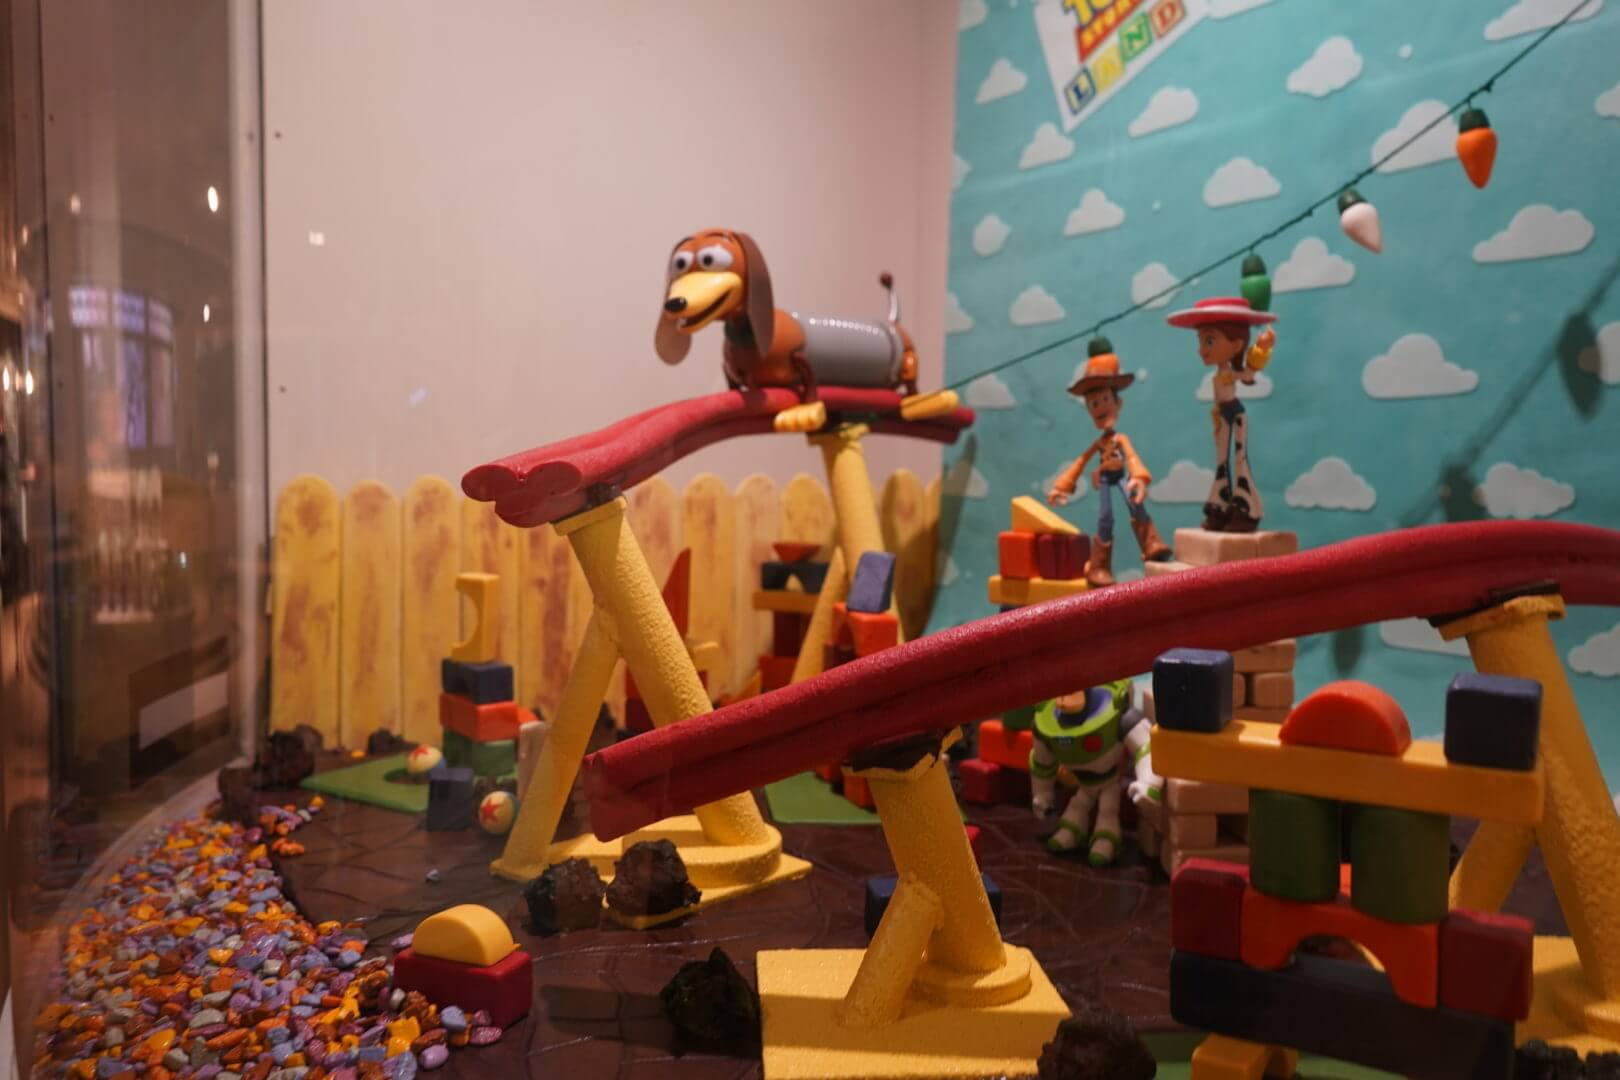 Chocolate Model of Toy Story Land at The Chocolate Experience in Epcot's Food & Wine Festival 2018